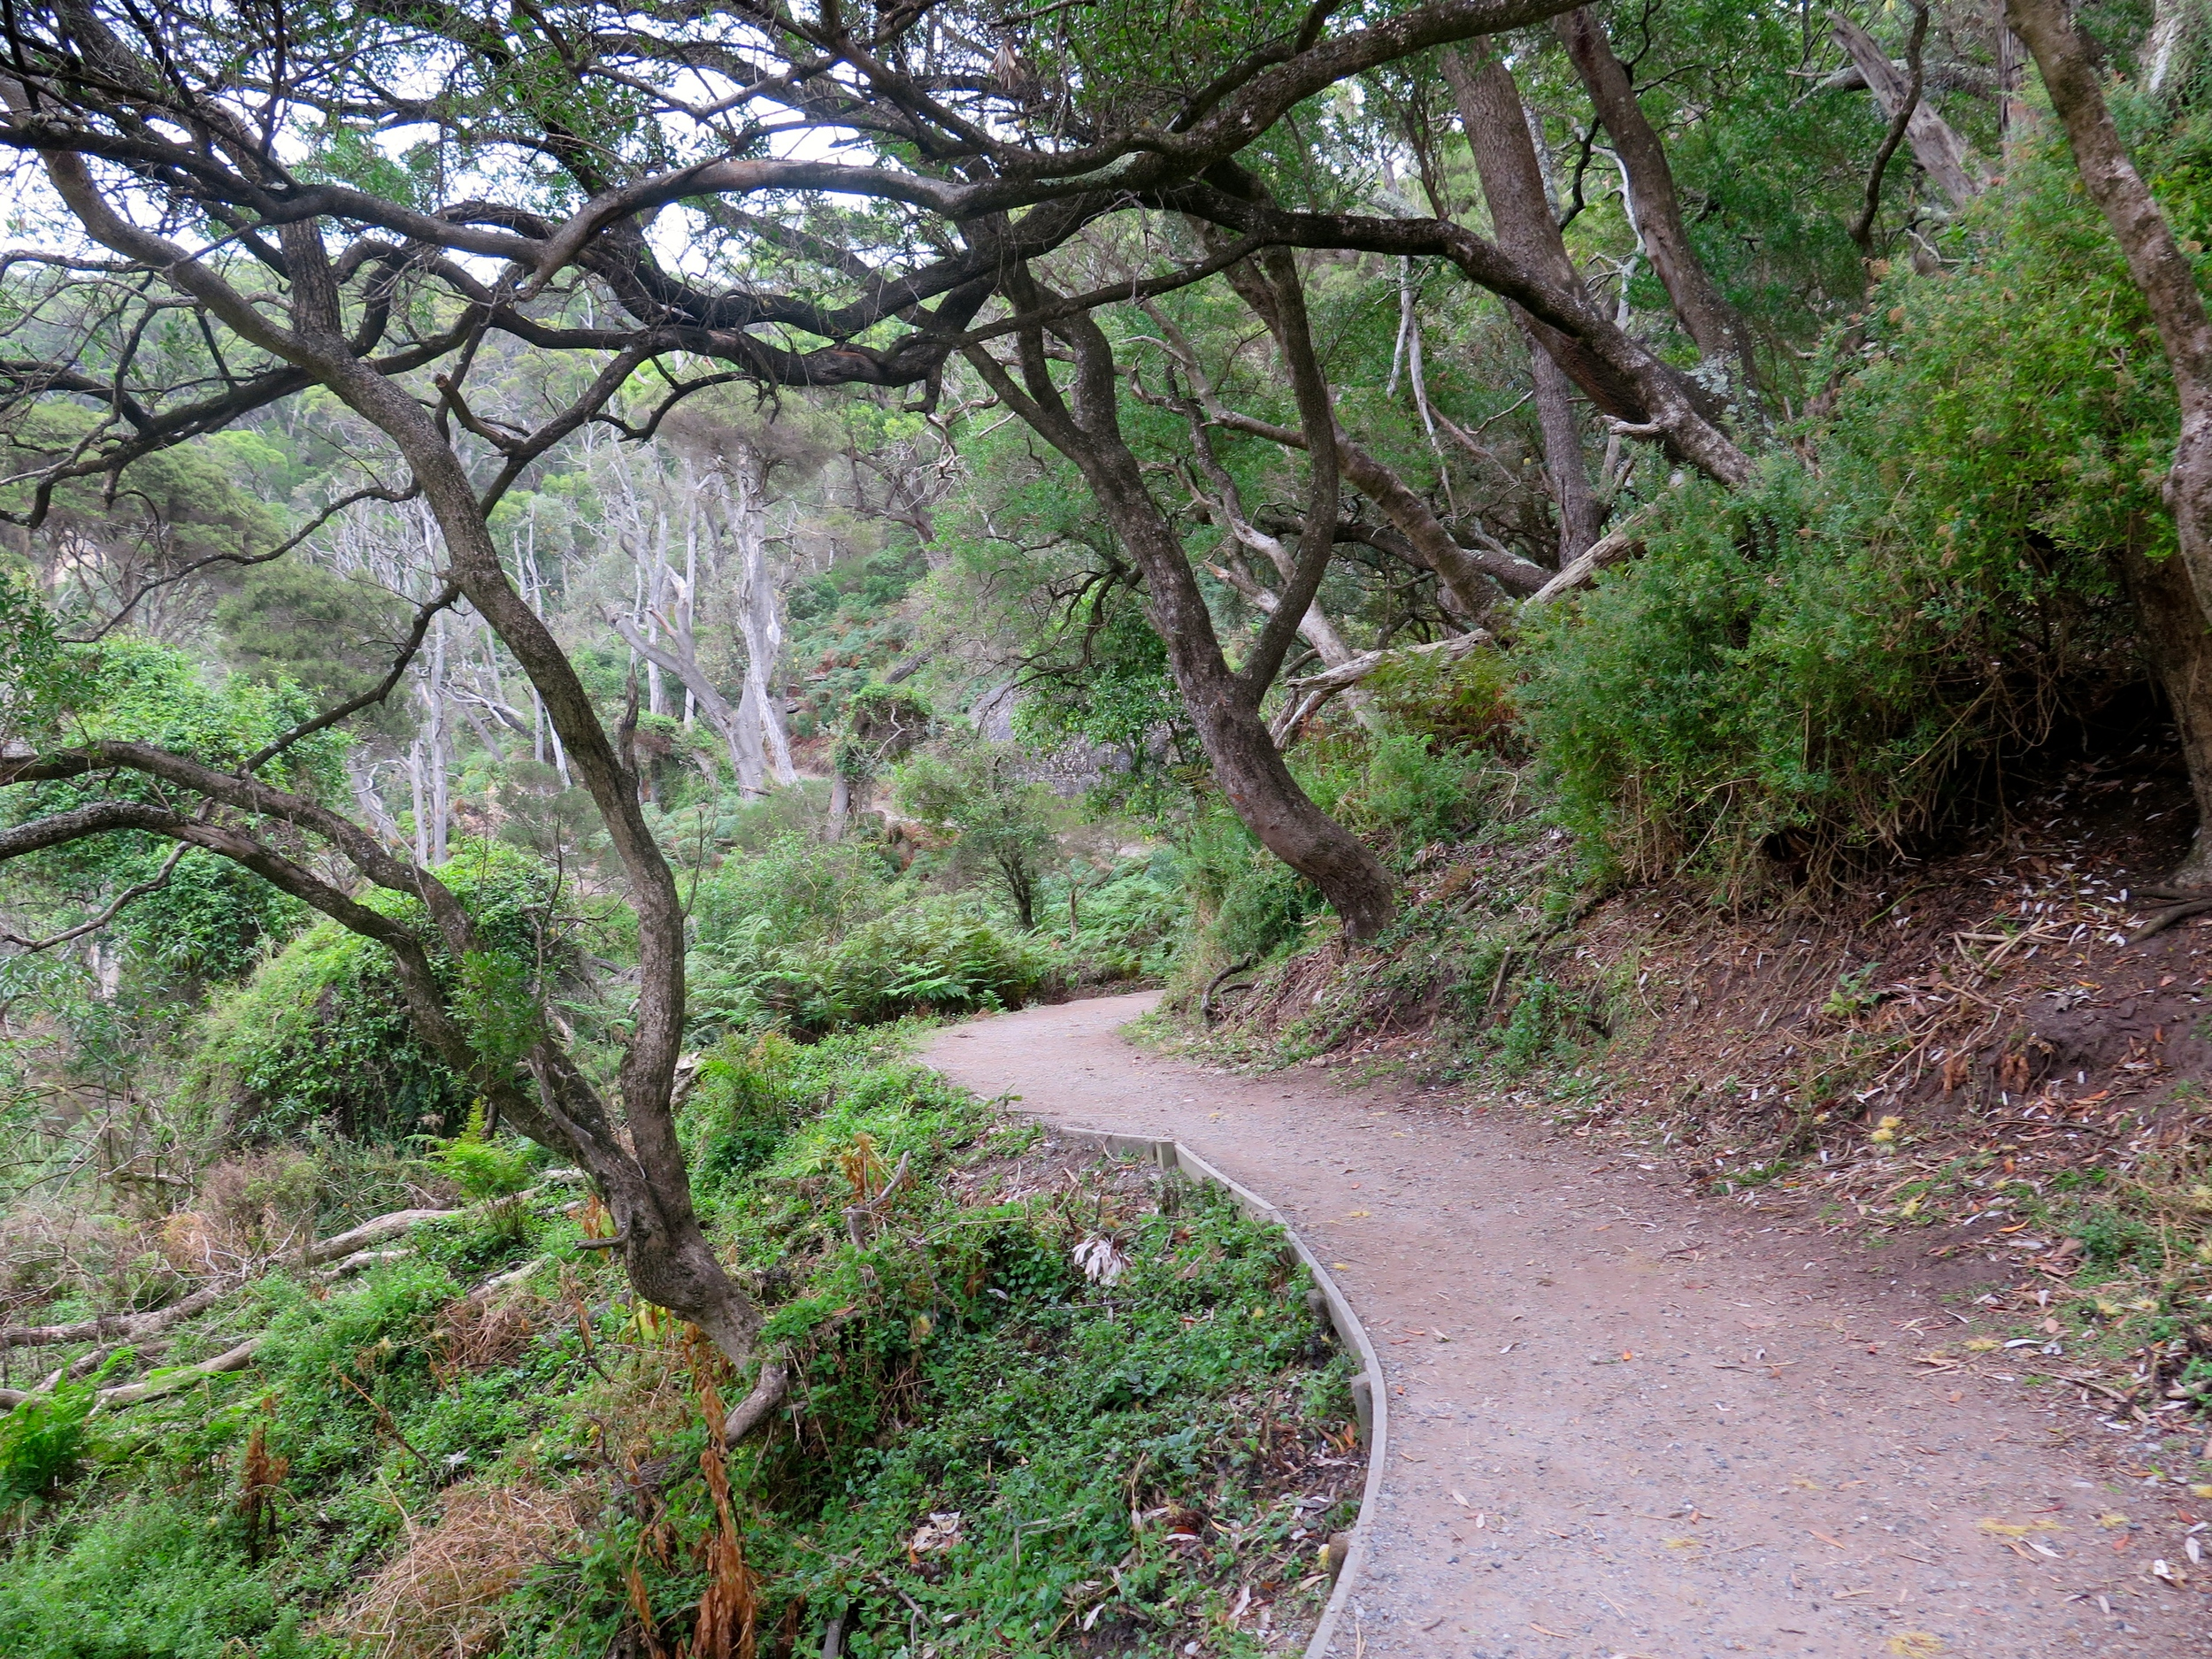 A beautiful section of the walking track. Photo: Cathy Cavallo